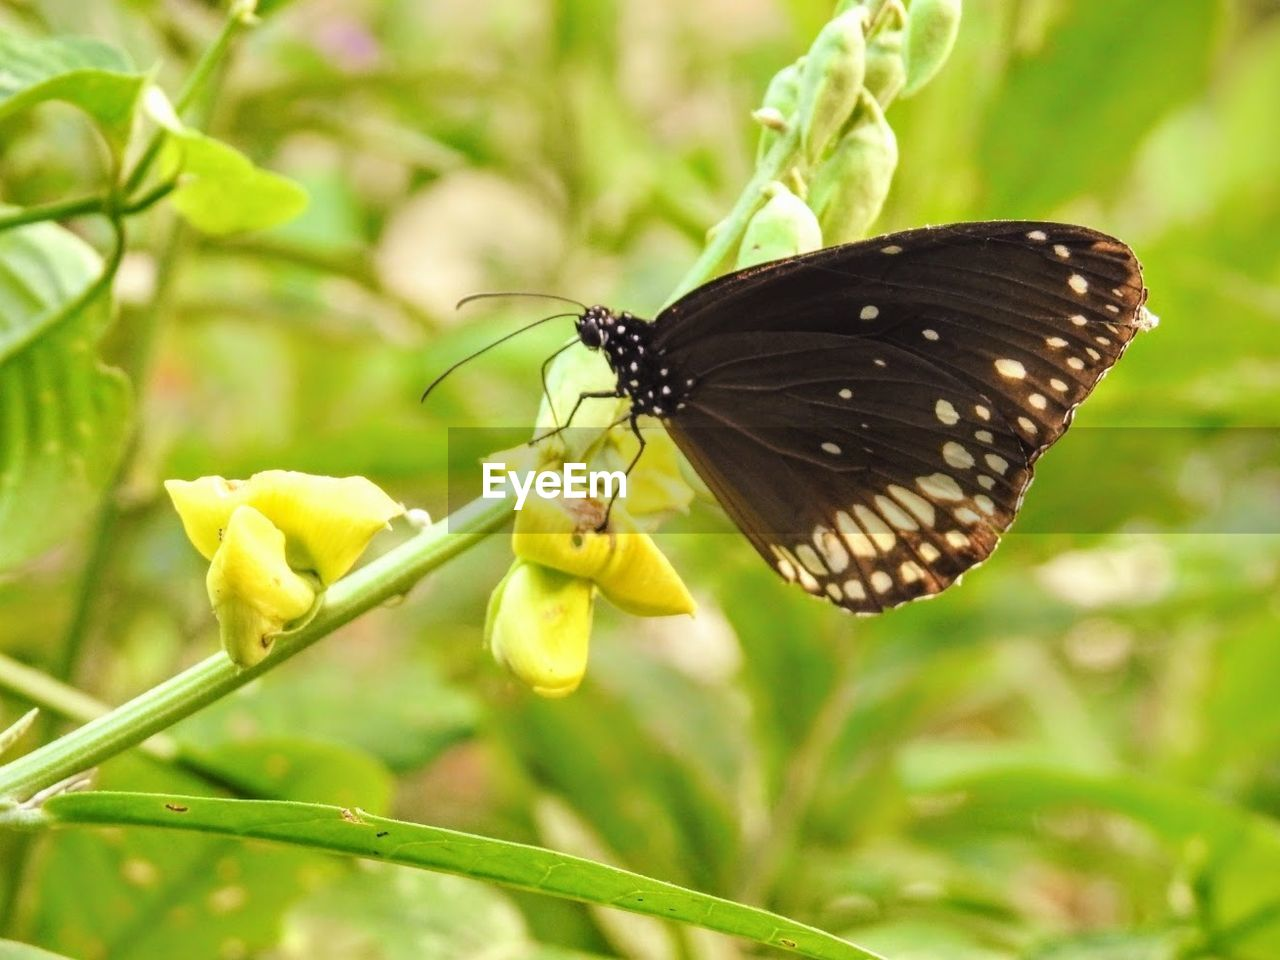 insect, animal themes, butterfly - insect, one animal, nature, animals in the wild, plant, freshness, butterfly, flower, animal wildlife, outdoors, fragility, focus on foreground, no people, green color, beauty in nature, leaf, growth, close-up, day, yellow, perching, pollination, flower head, spread wings